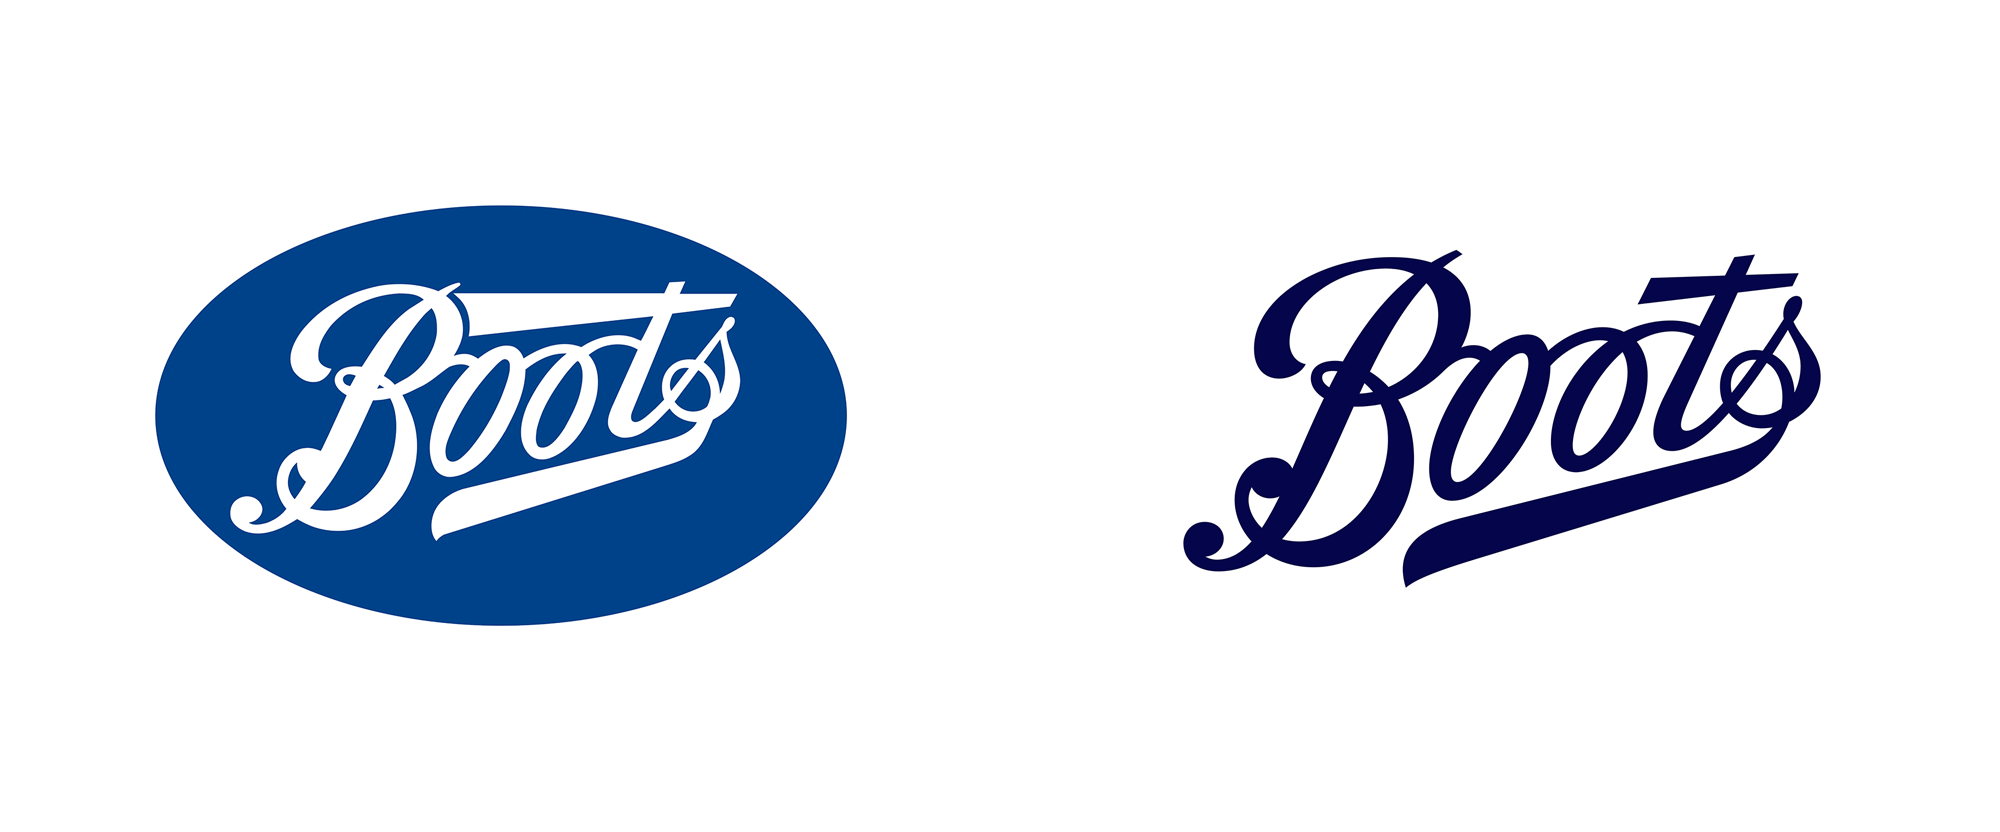 New Logo and Identity for Boots UK by Coley Porter Bell